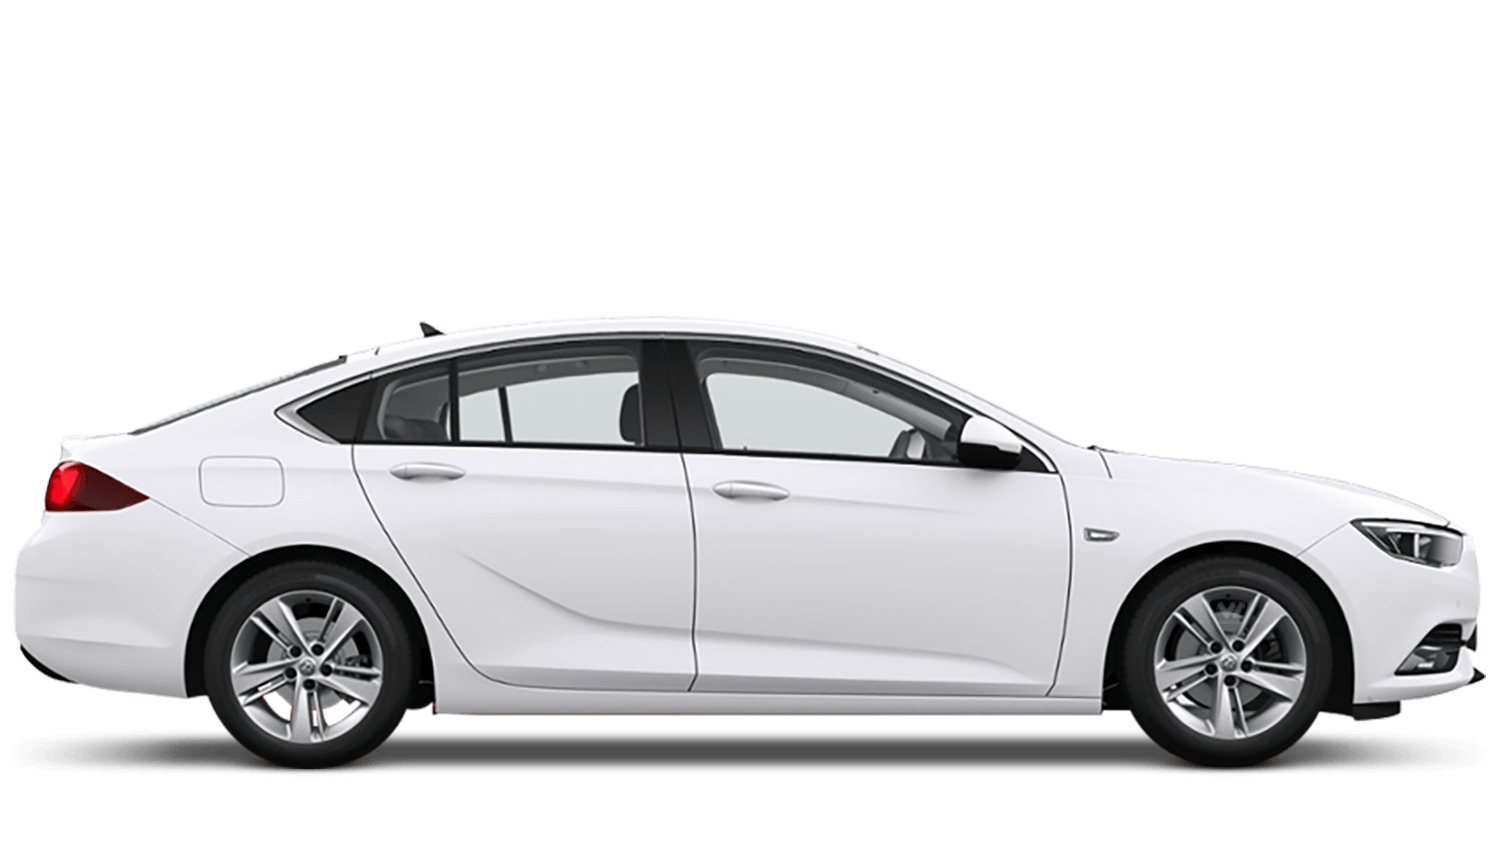 Summit White (Brilliant) Vauxhall Insignia Grand Sport